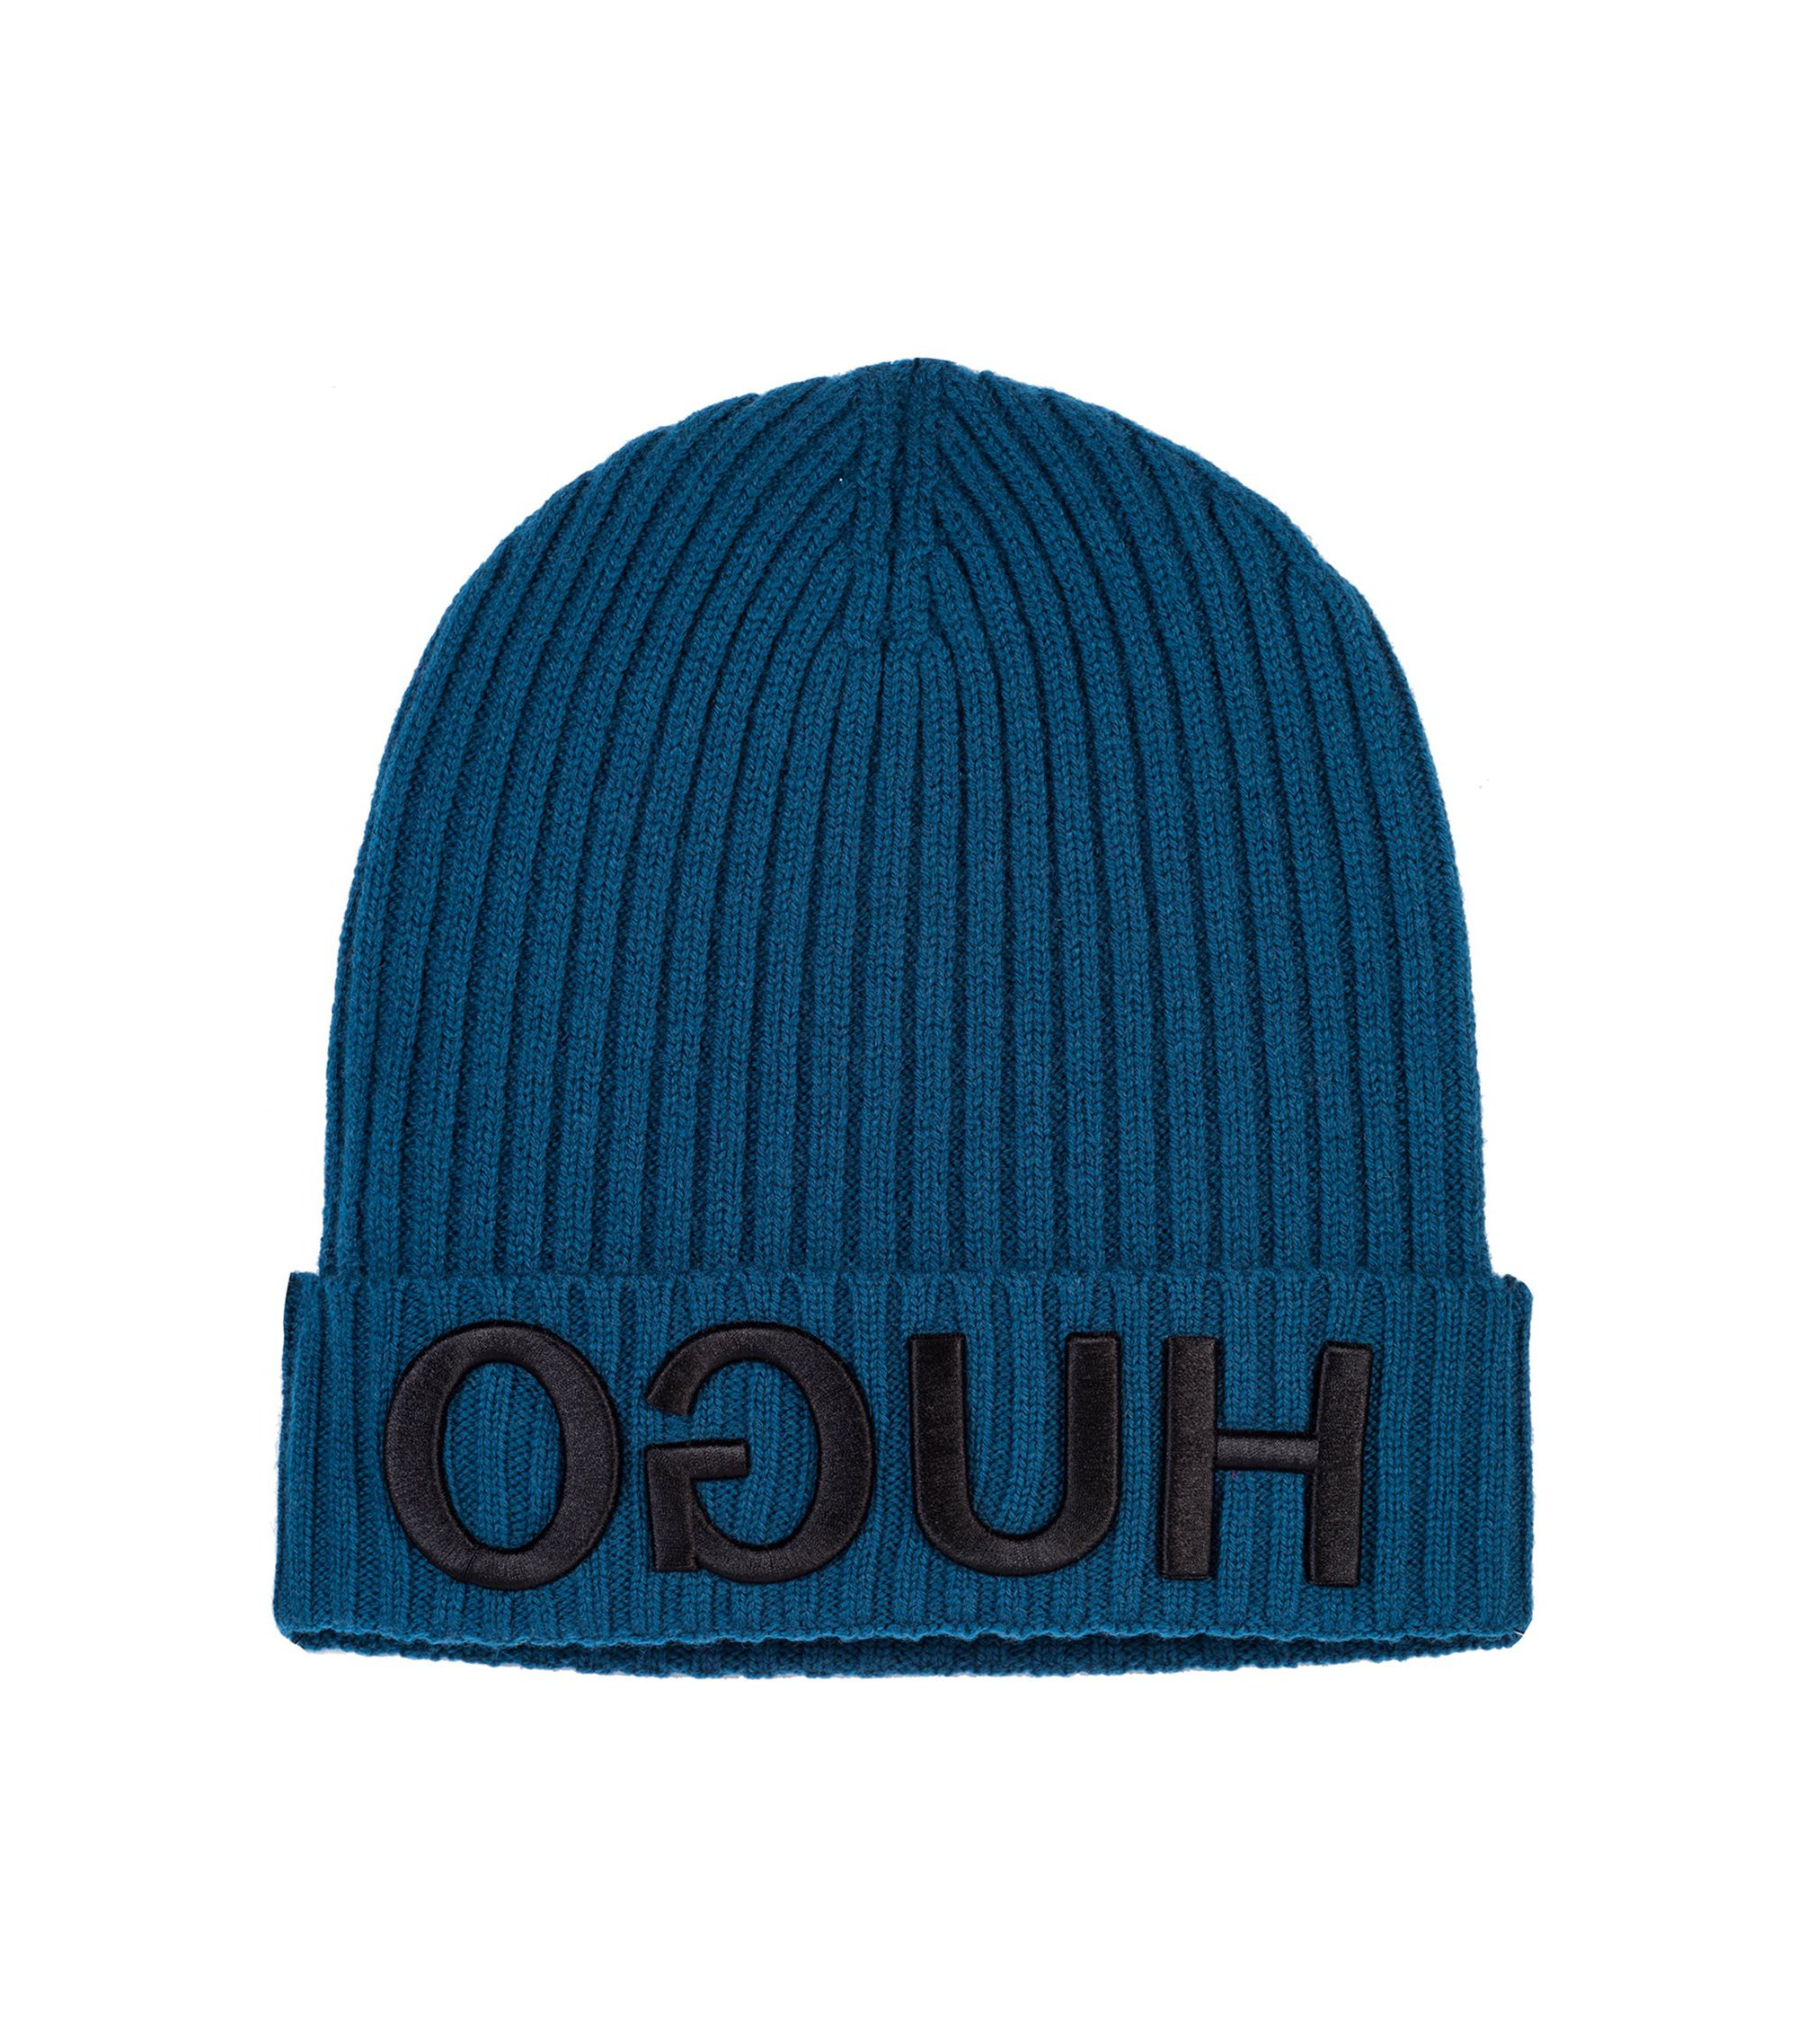 Wool beanie hat with 3D reverse-logo embroidery, Blue